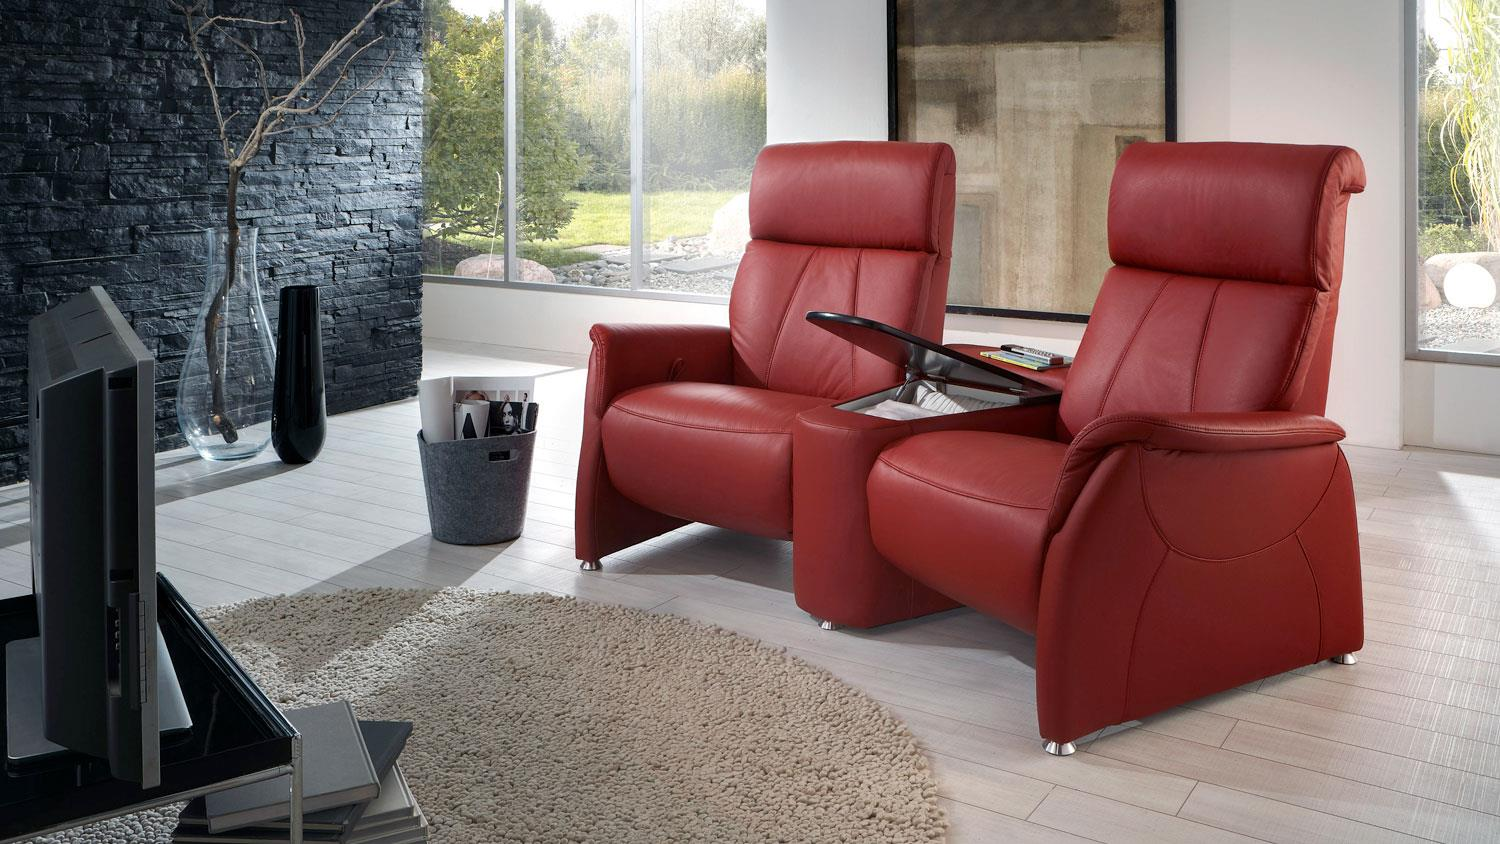 Kino Sessel Adair Homecinema Leder Ziegel Rot Mit Funktion